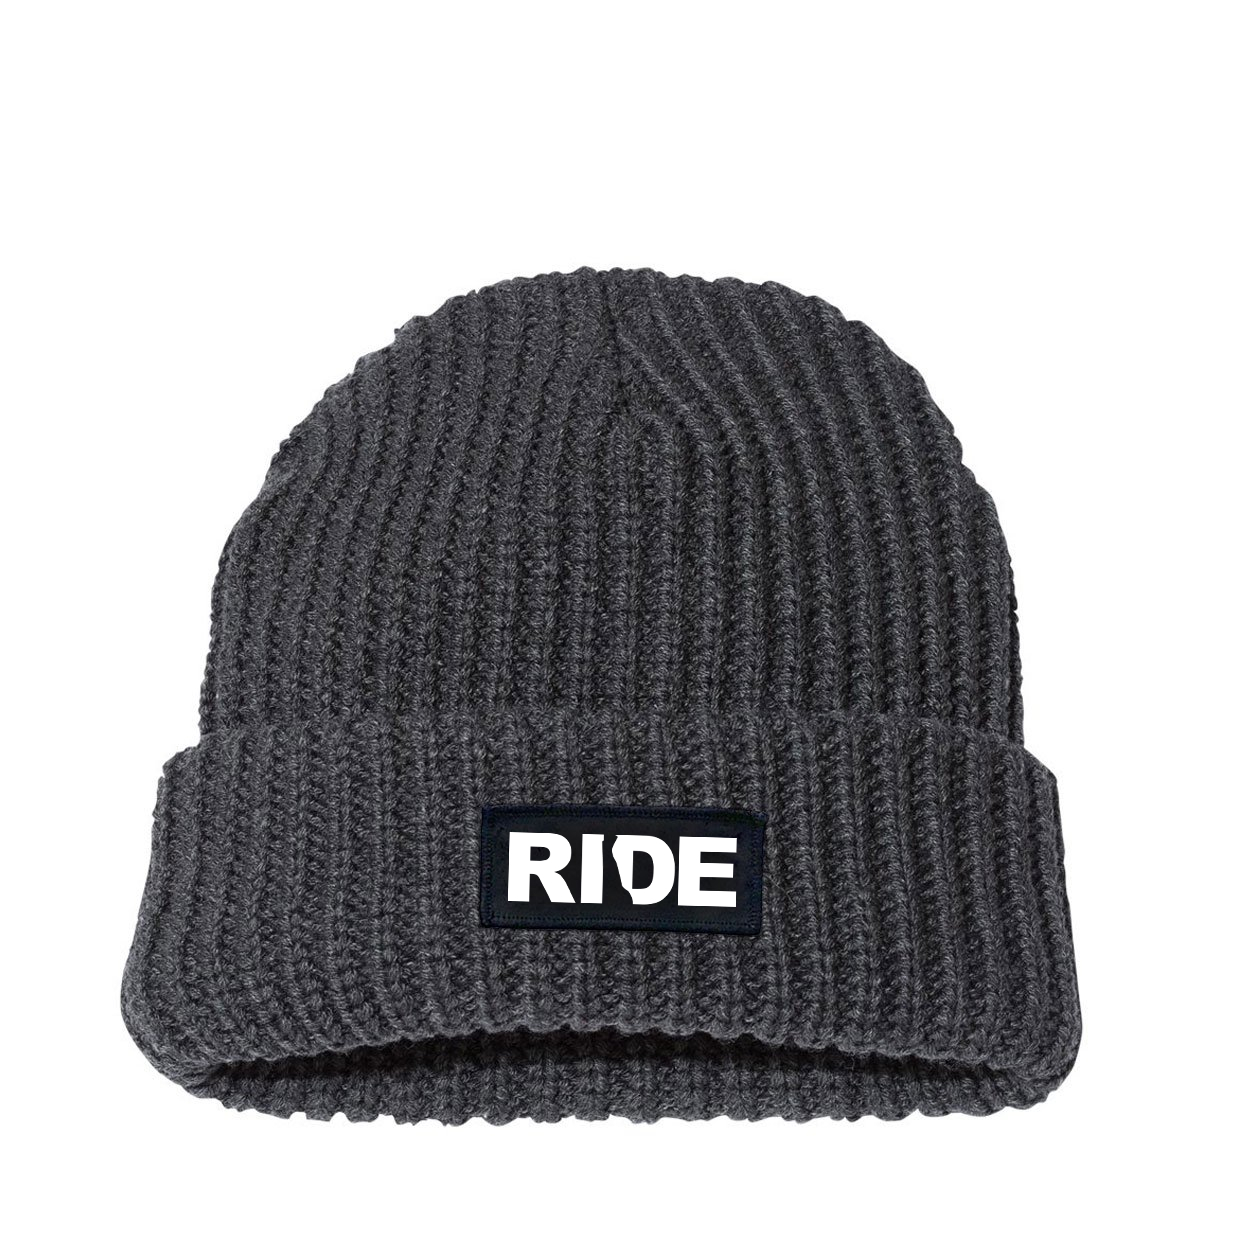 Ride Delaware Night Out Woven Patch Roll Up Jumbo Chunky Knit Beanie Charcoal (White Logo)